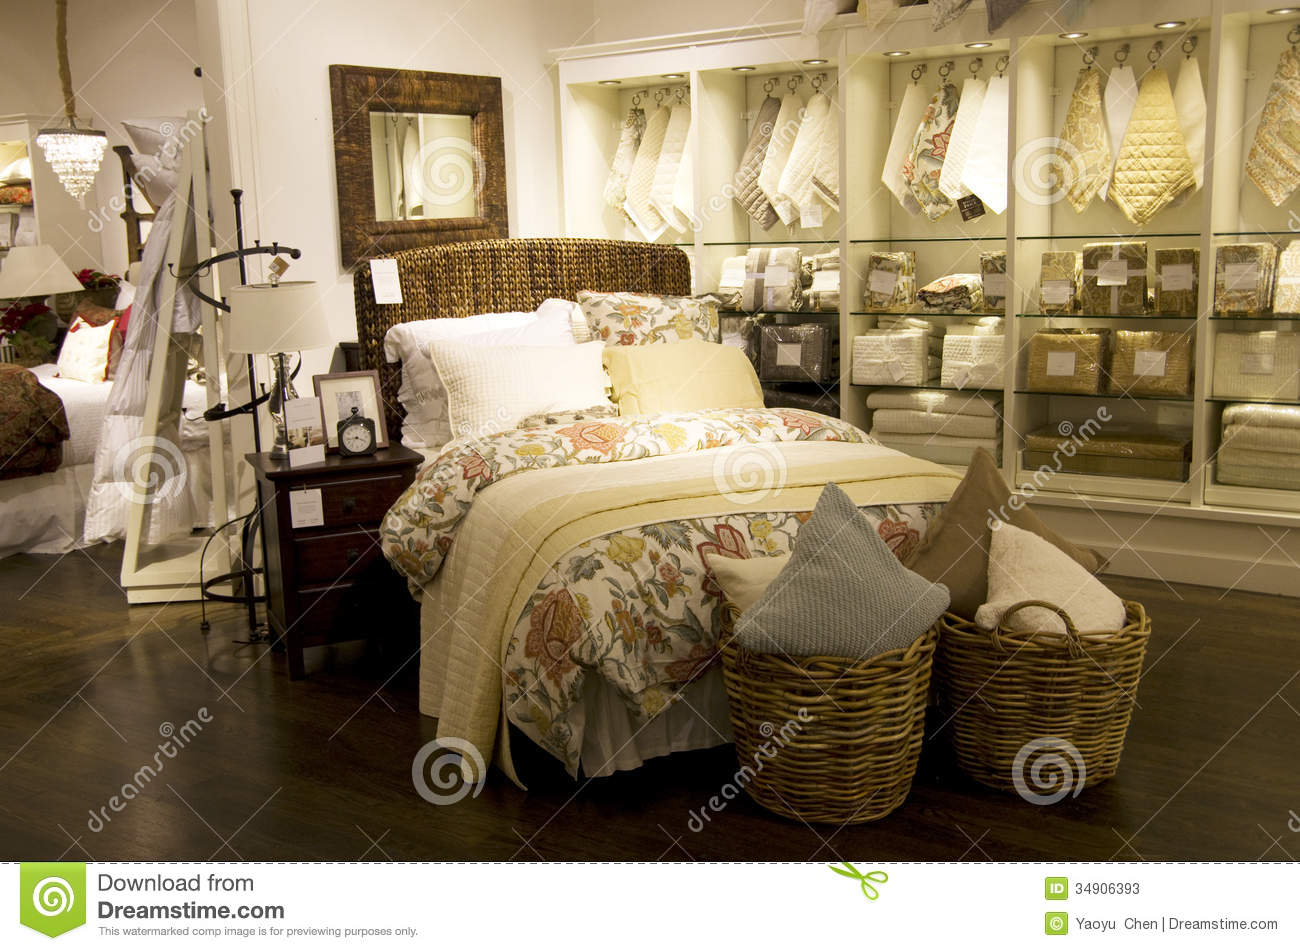 Home bedroom decor furniture store stock photos image for Nice home decor